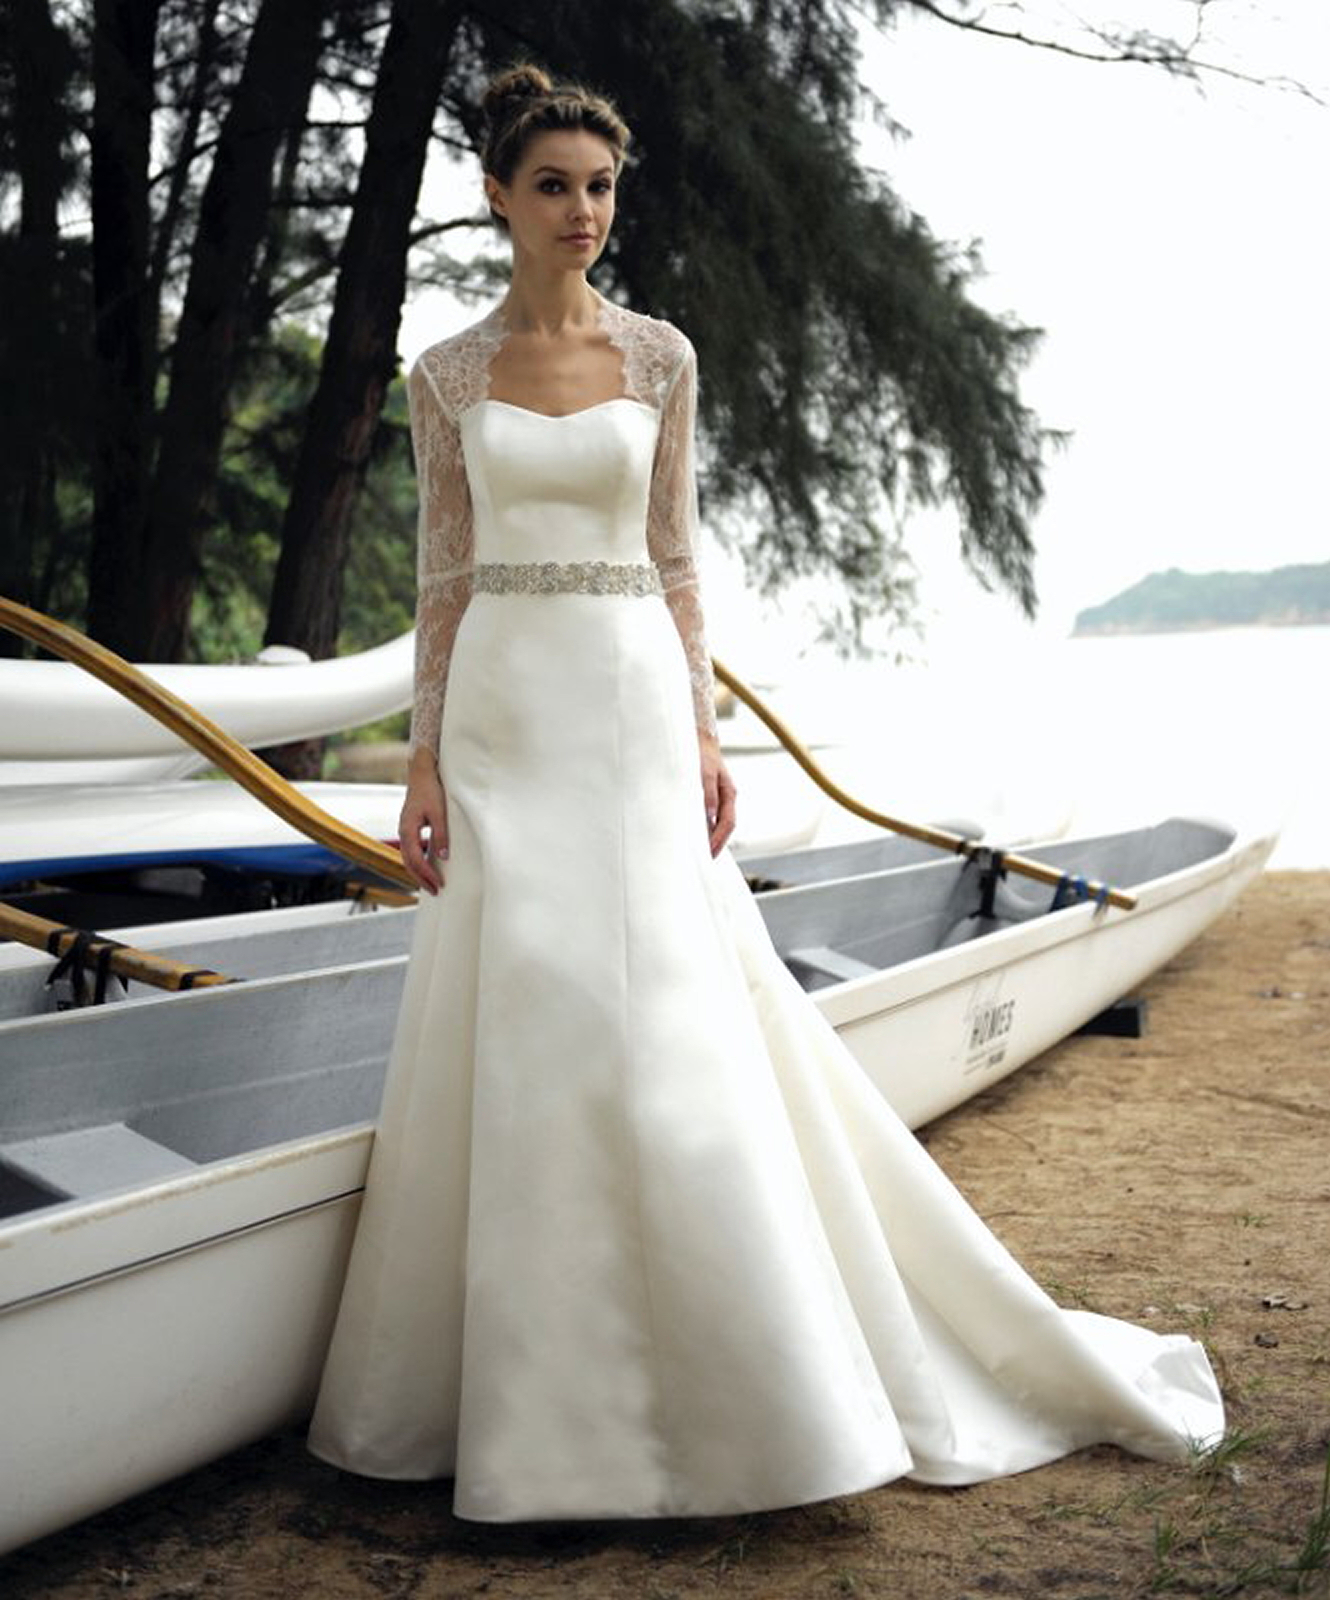 HITCHED! Bridal « Asia Business on SO-U.TV